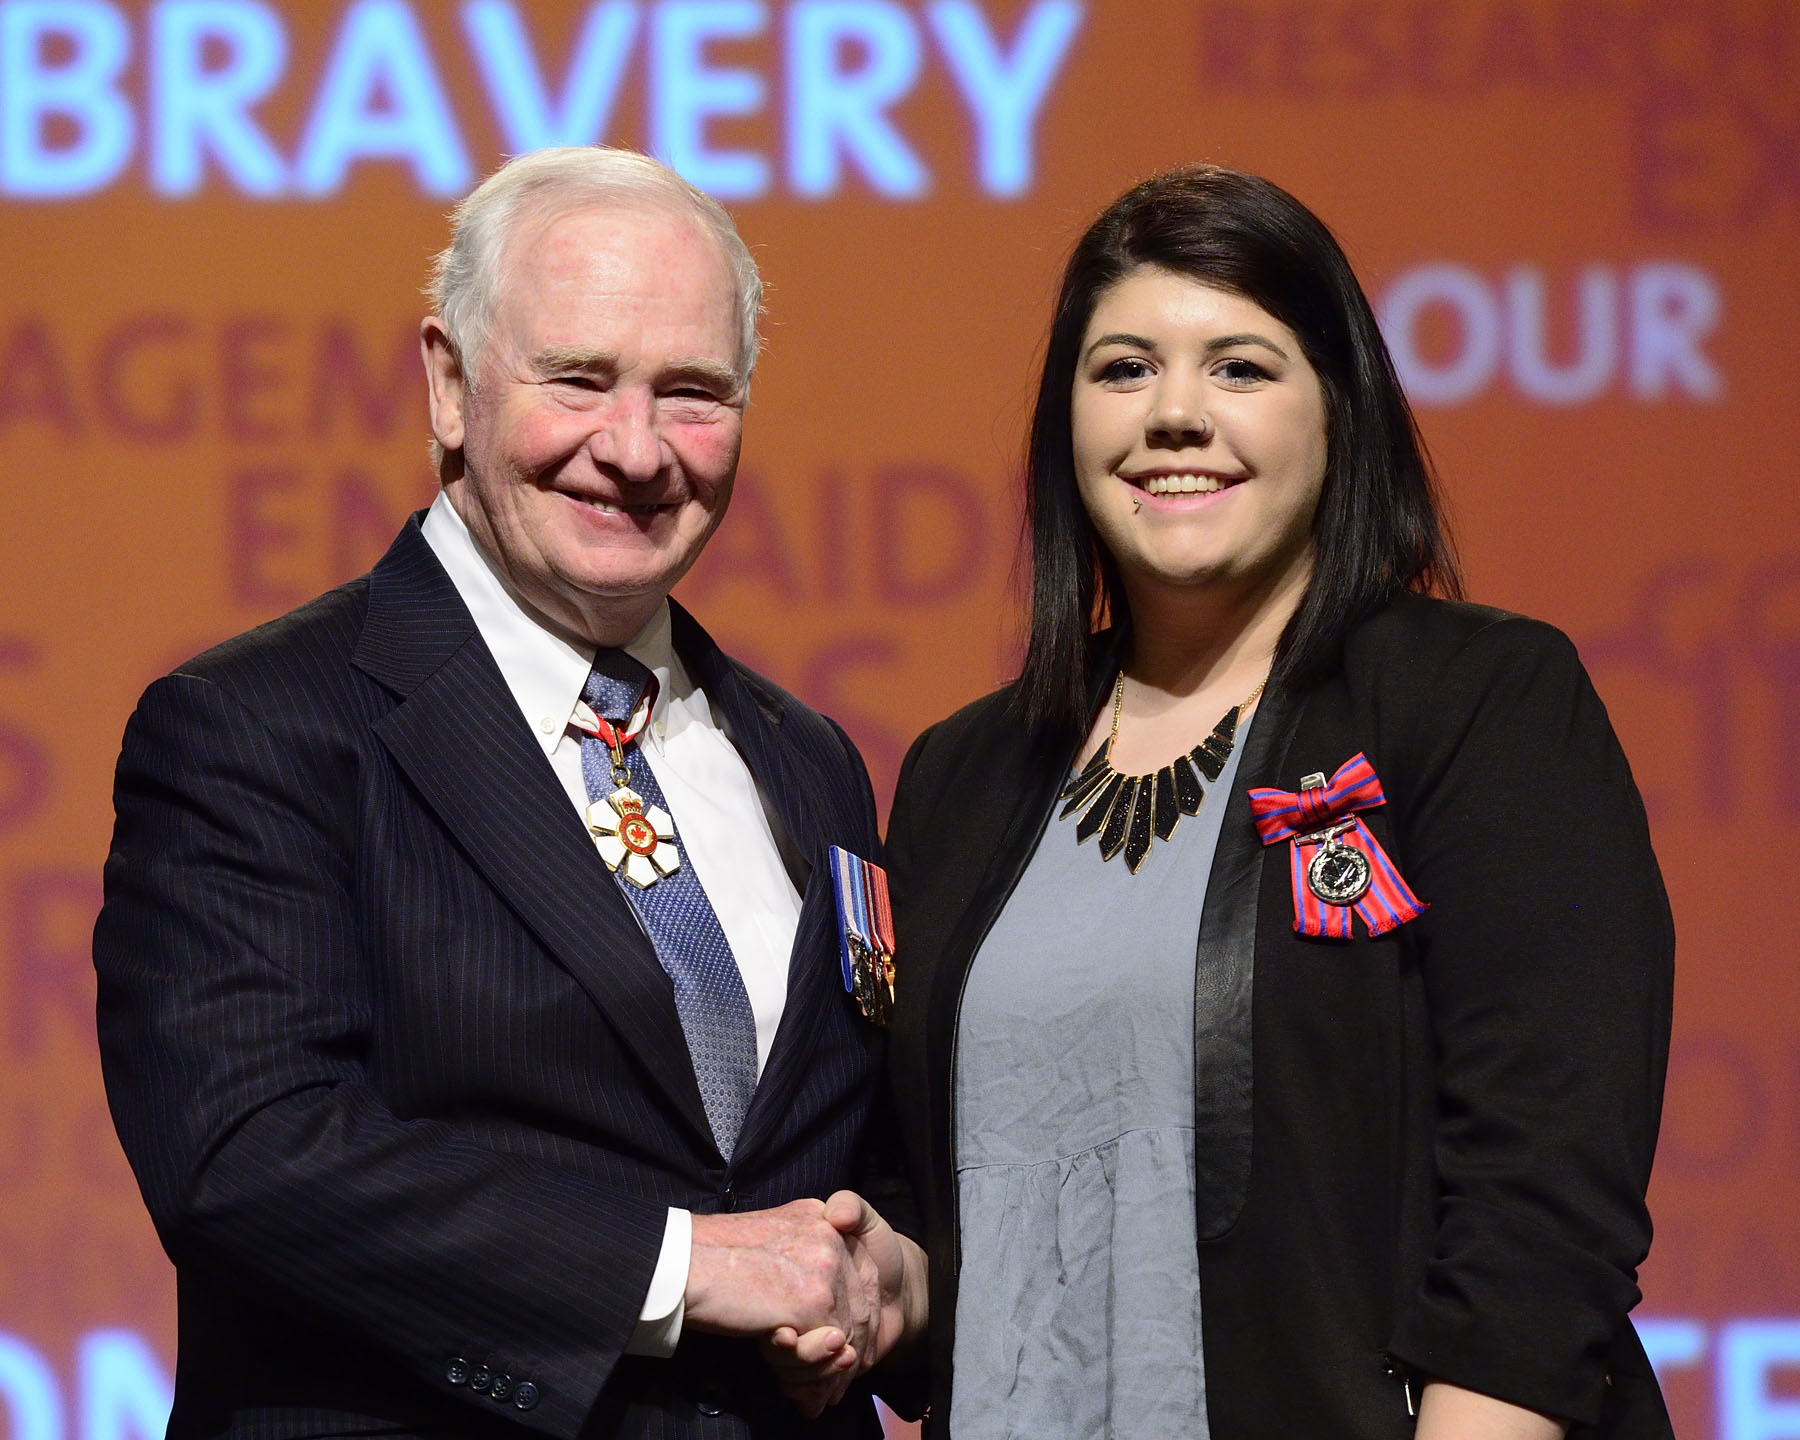 His Excellency presented the Medal of Bravery to Chelsea Little, M.B. On August 11, 2014, then-15-year-old Chelsea Little rescued two people from a possible drowning in Thoburn Lake, near Clarenville, Newfoundland and Labrador. Ms. Little was swimming across the lake with members of her family when she realized that her stepfather was lagging behind and experiencing breathing problems. Chelsea swam back to him and dragged him back to shore just in time to see her uncle in distress before he disappeared beneath the surface. Despite her fatigue, Chelsea dove to reach his side and swam back to shore with him in tow.